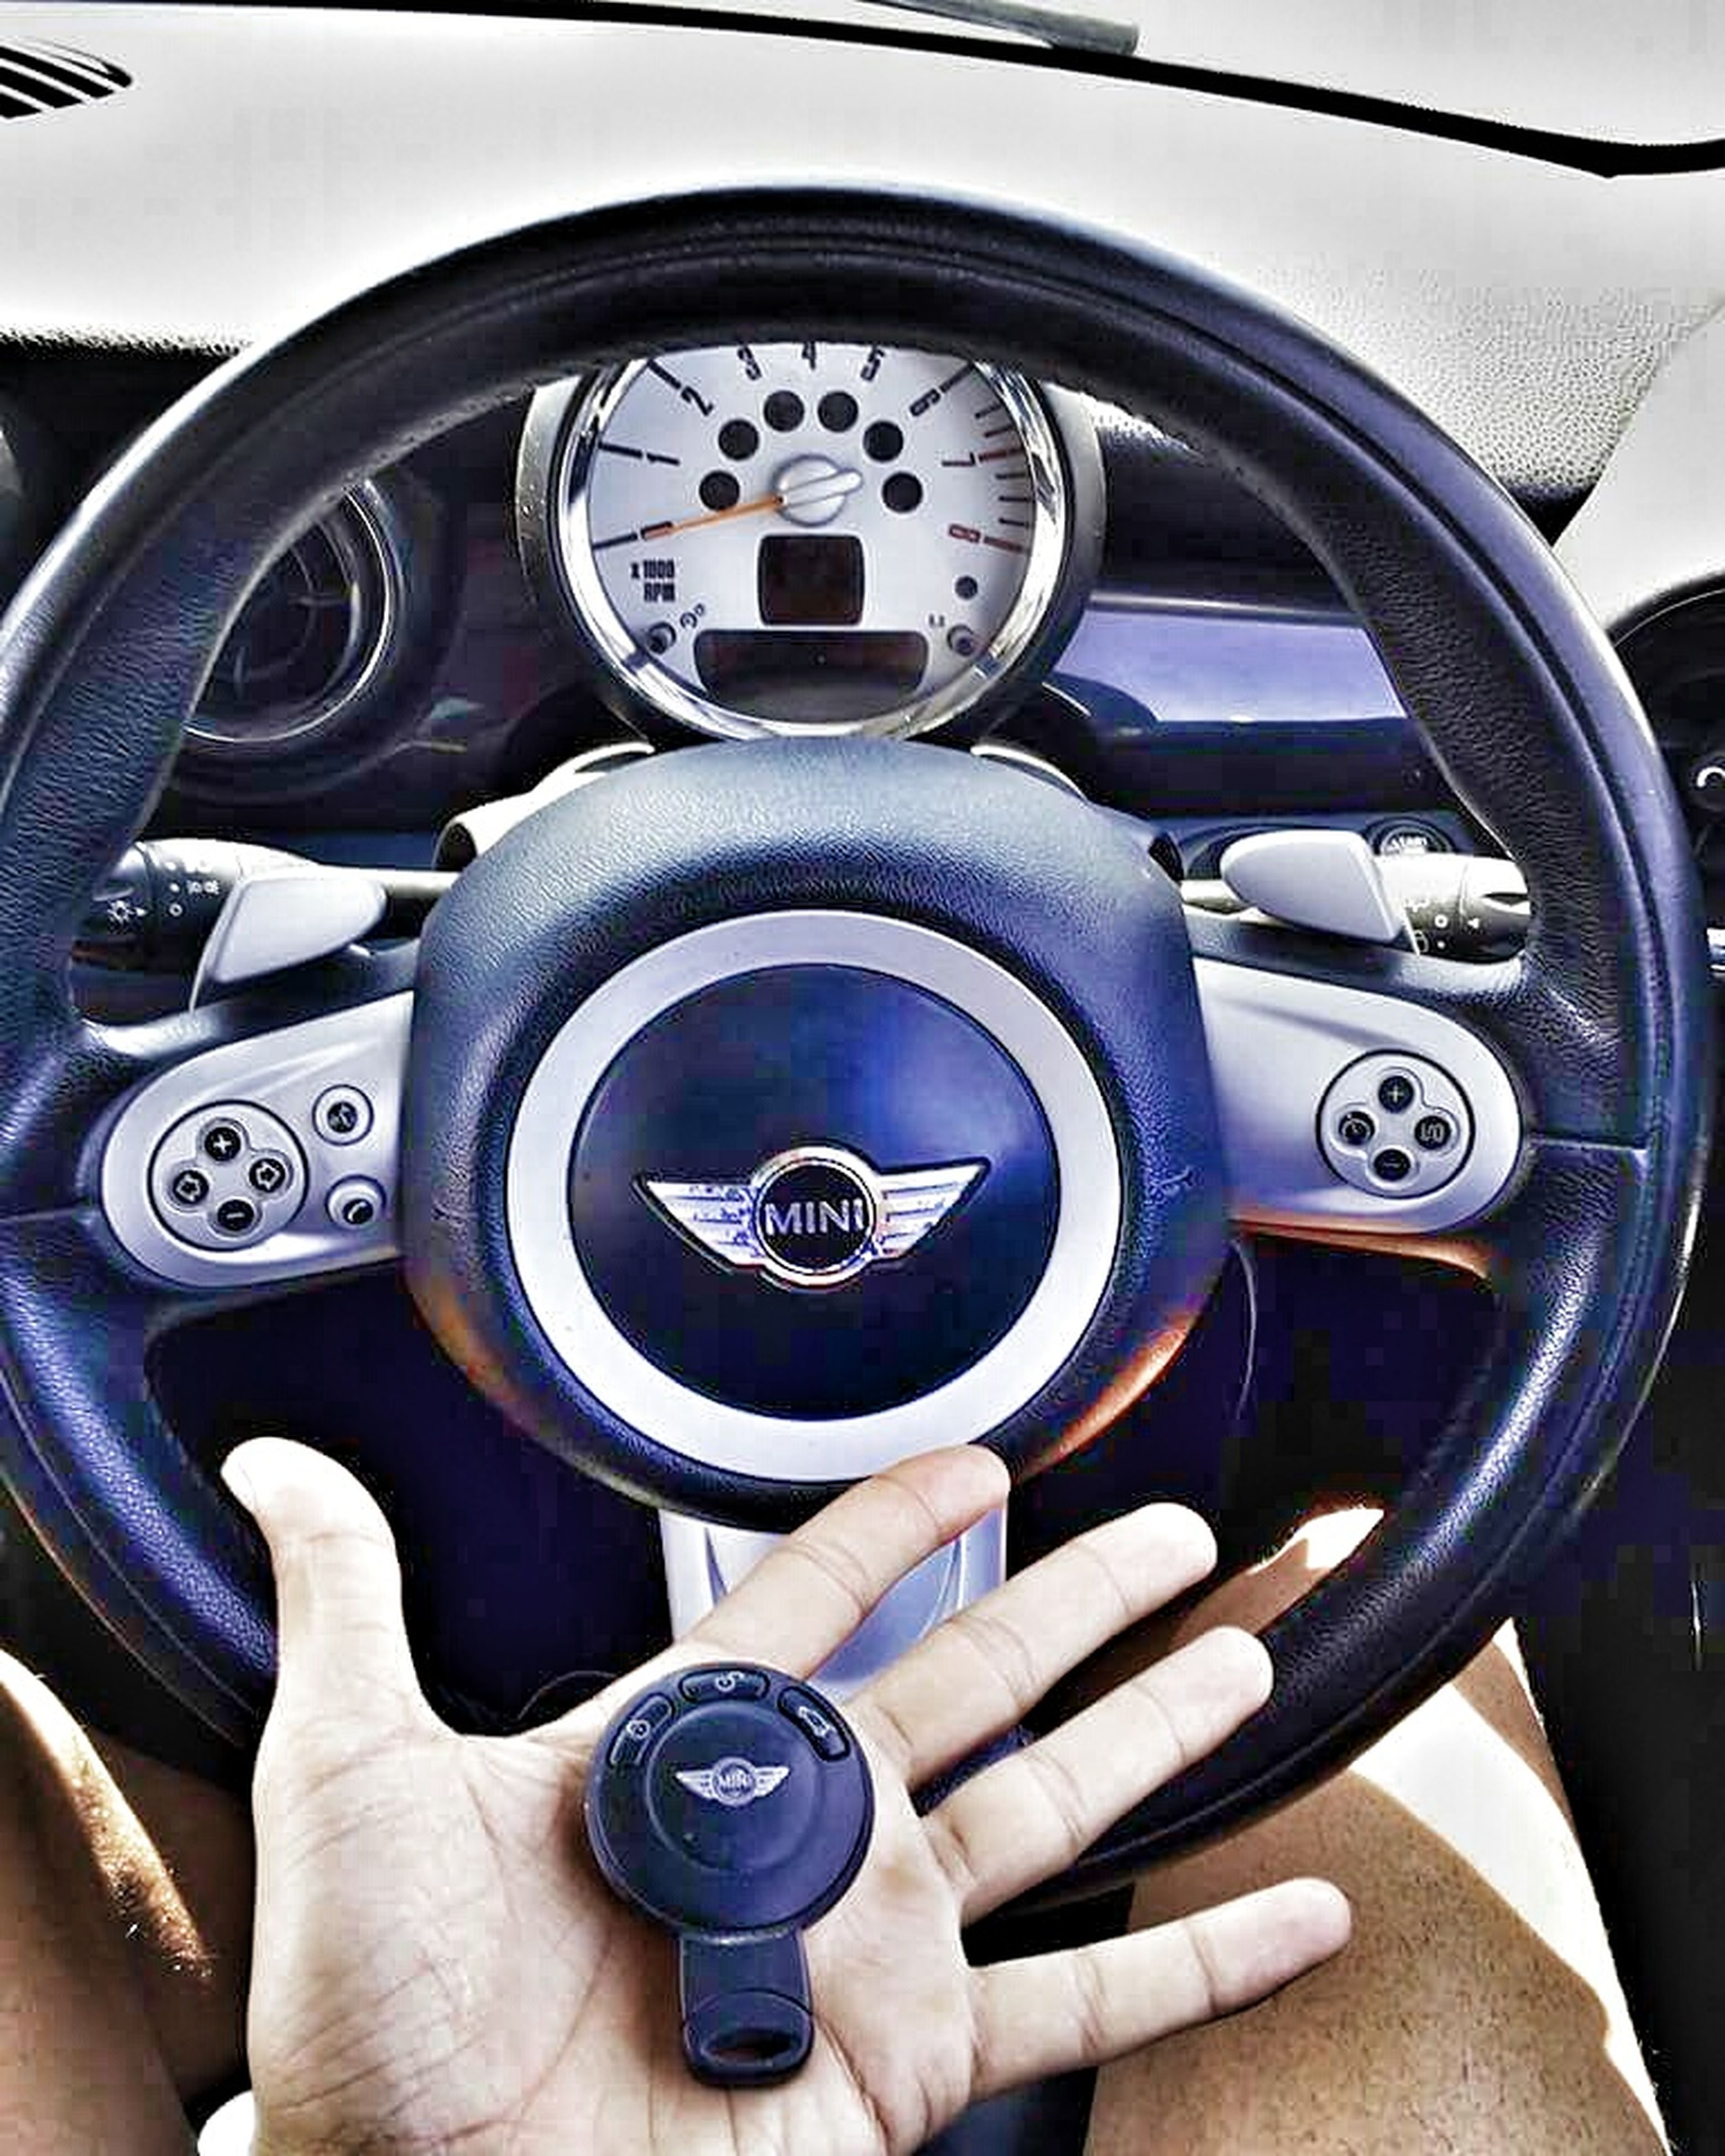 human hand, human body part, car, transportation, close-up, gearshift, technology, adult, people, one person, adults only, speedometer, day, outdoors, one man only